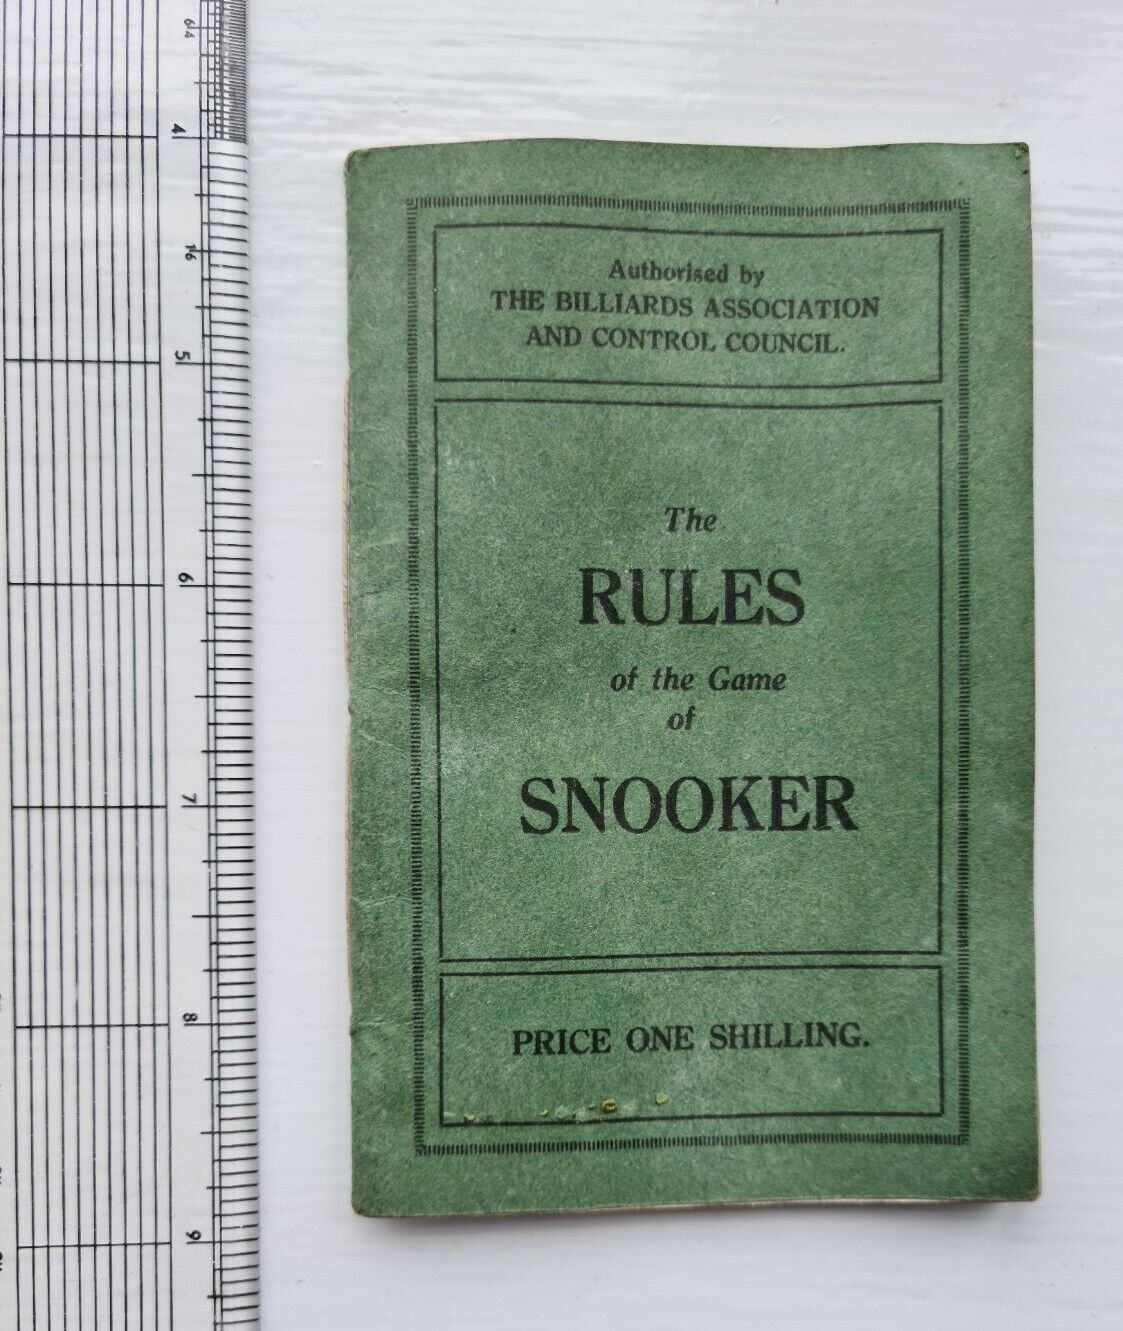 Rules of the game of Snooker, Booklet, Pamphlet